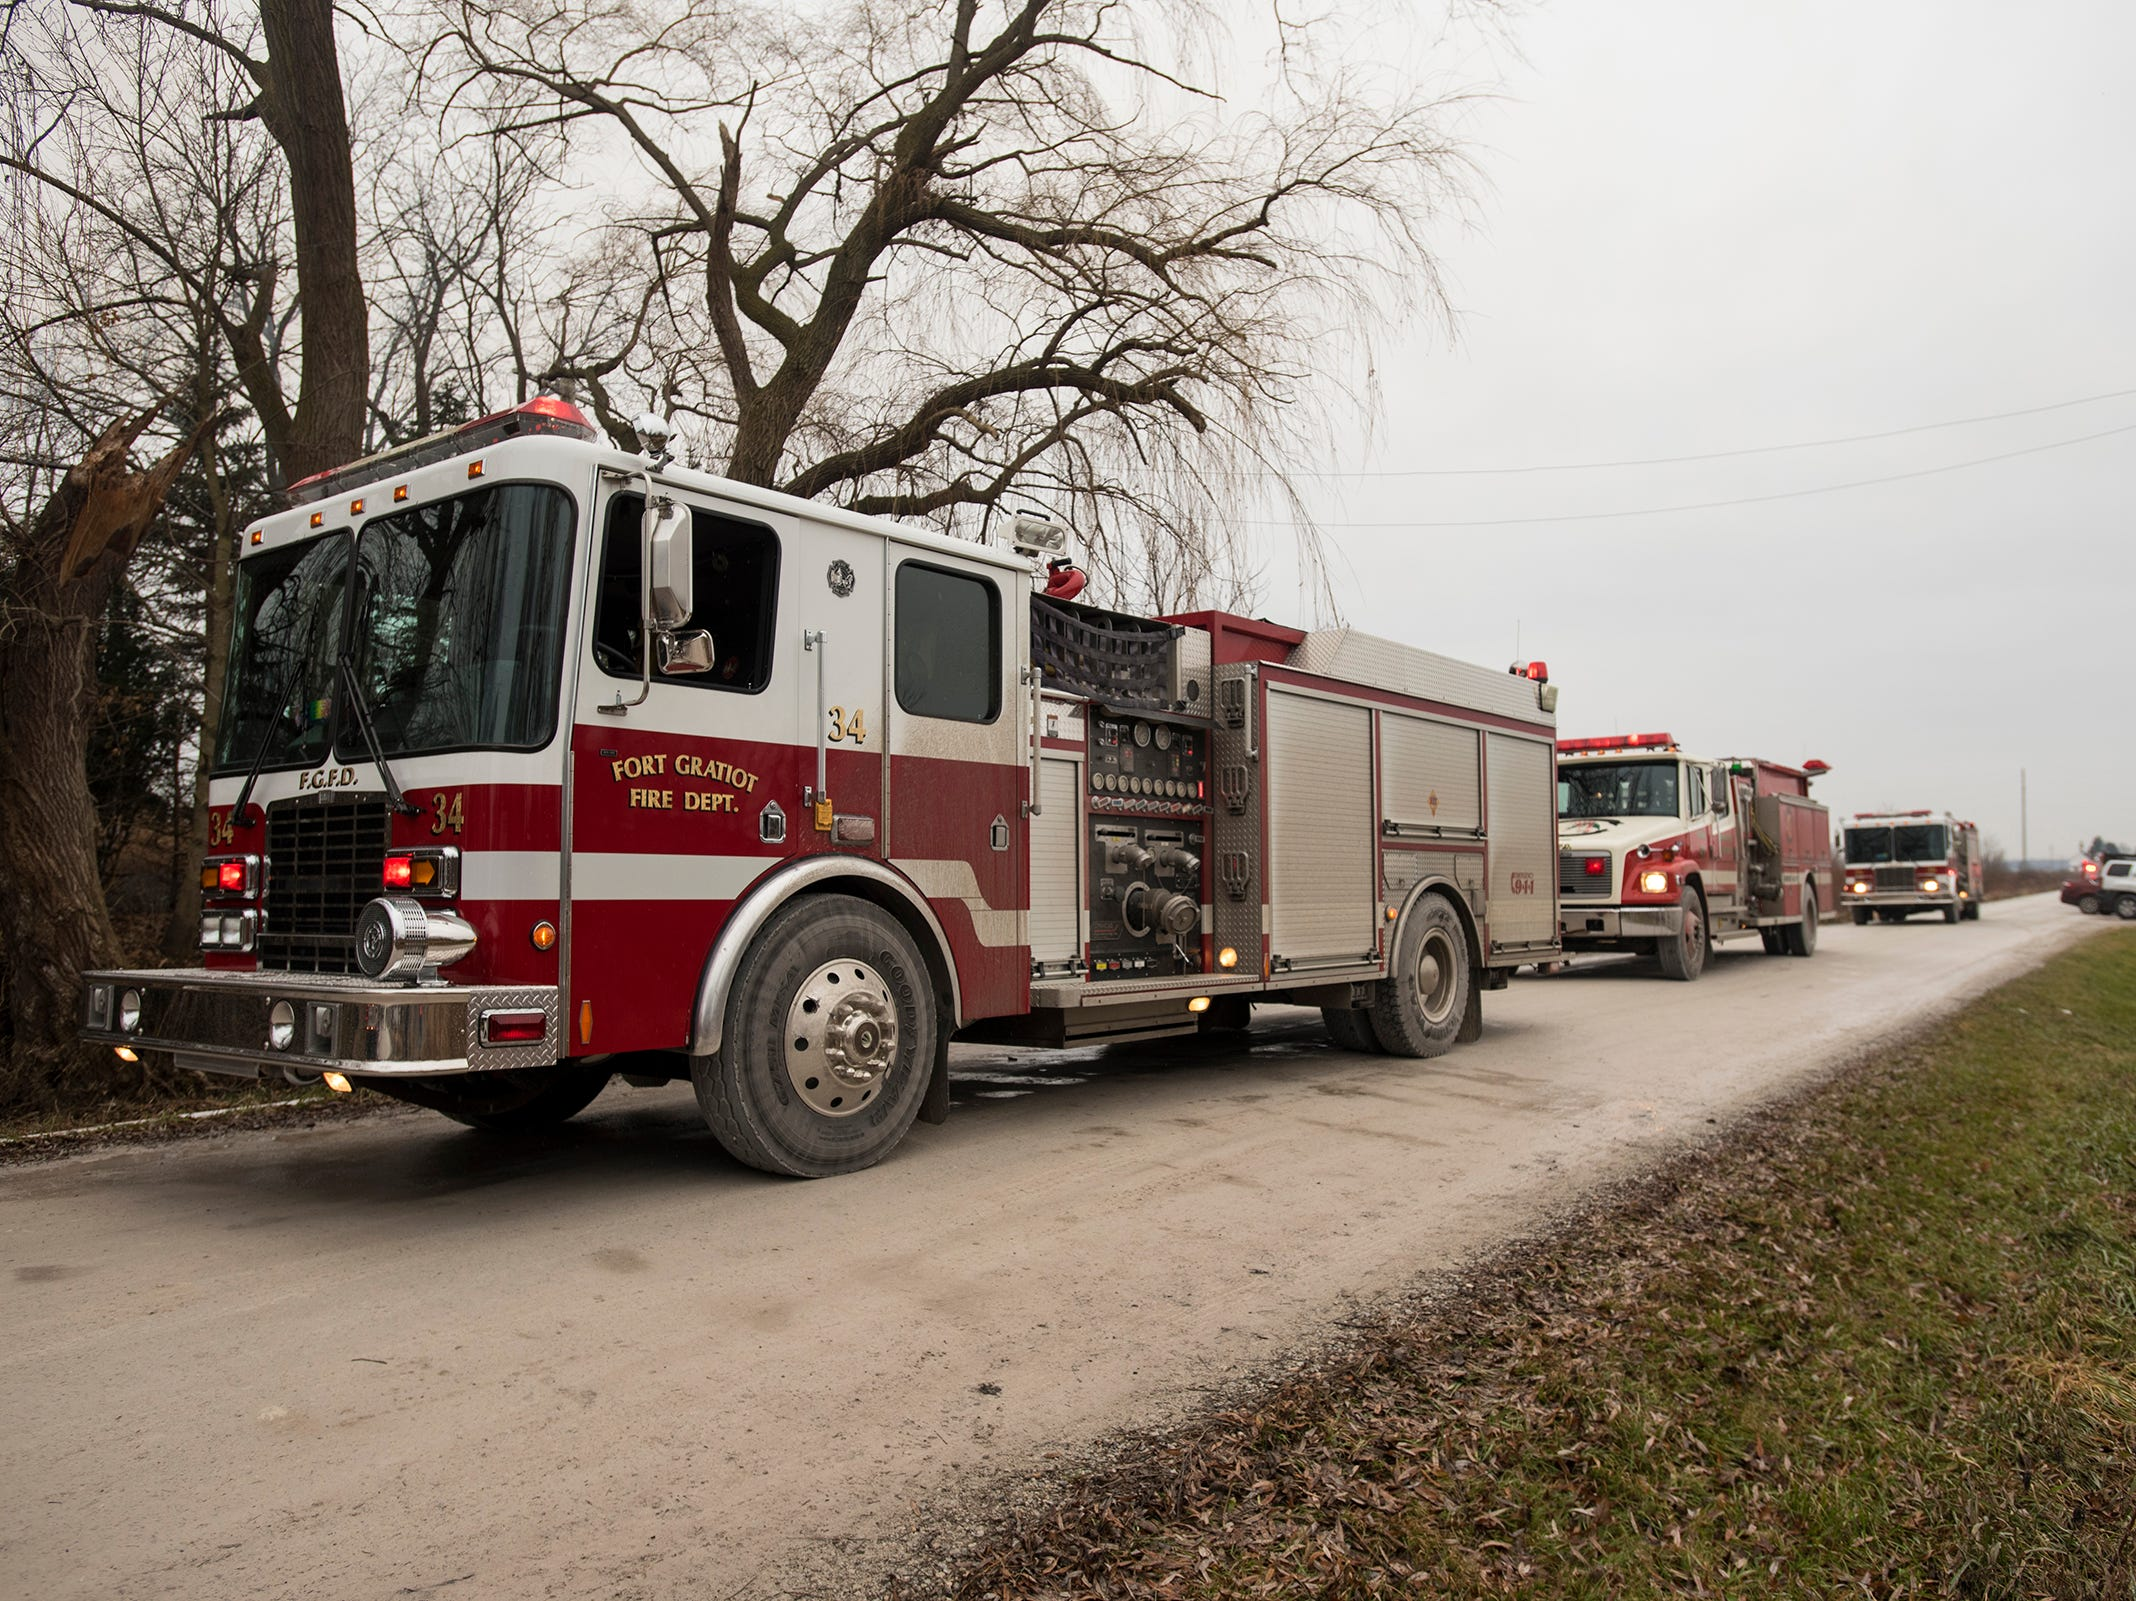 Firefighters work at the scene of a fire in the 3700 block of Brace Road in Fort Gratiot Thursday, Dec. 20, 2018. Firefighters received the call shortly before 1 p.m. The house was abandoned and the cause is under investigation.